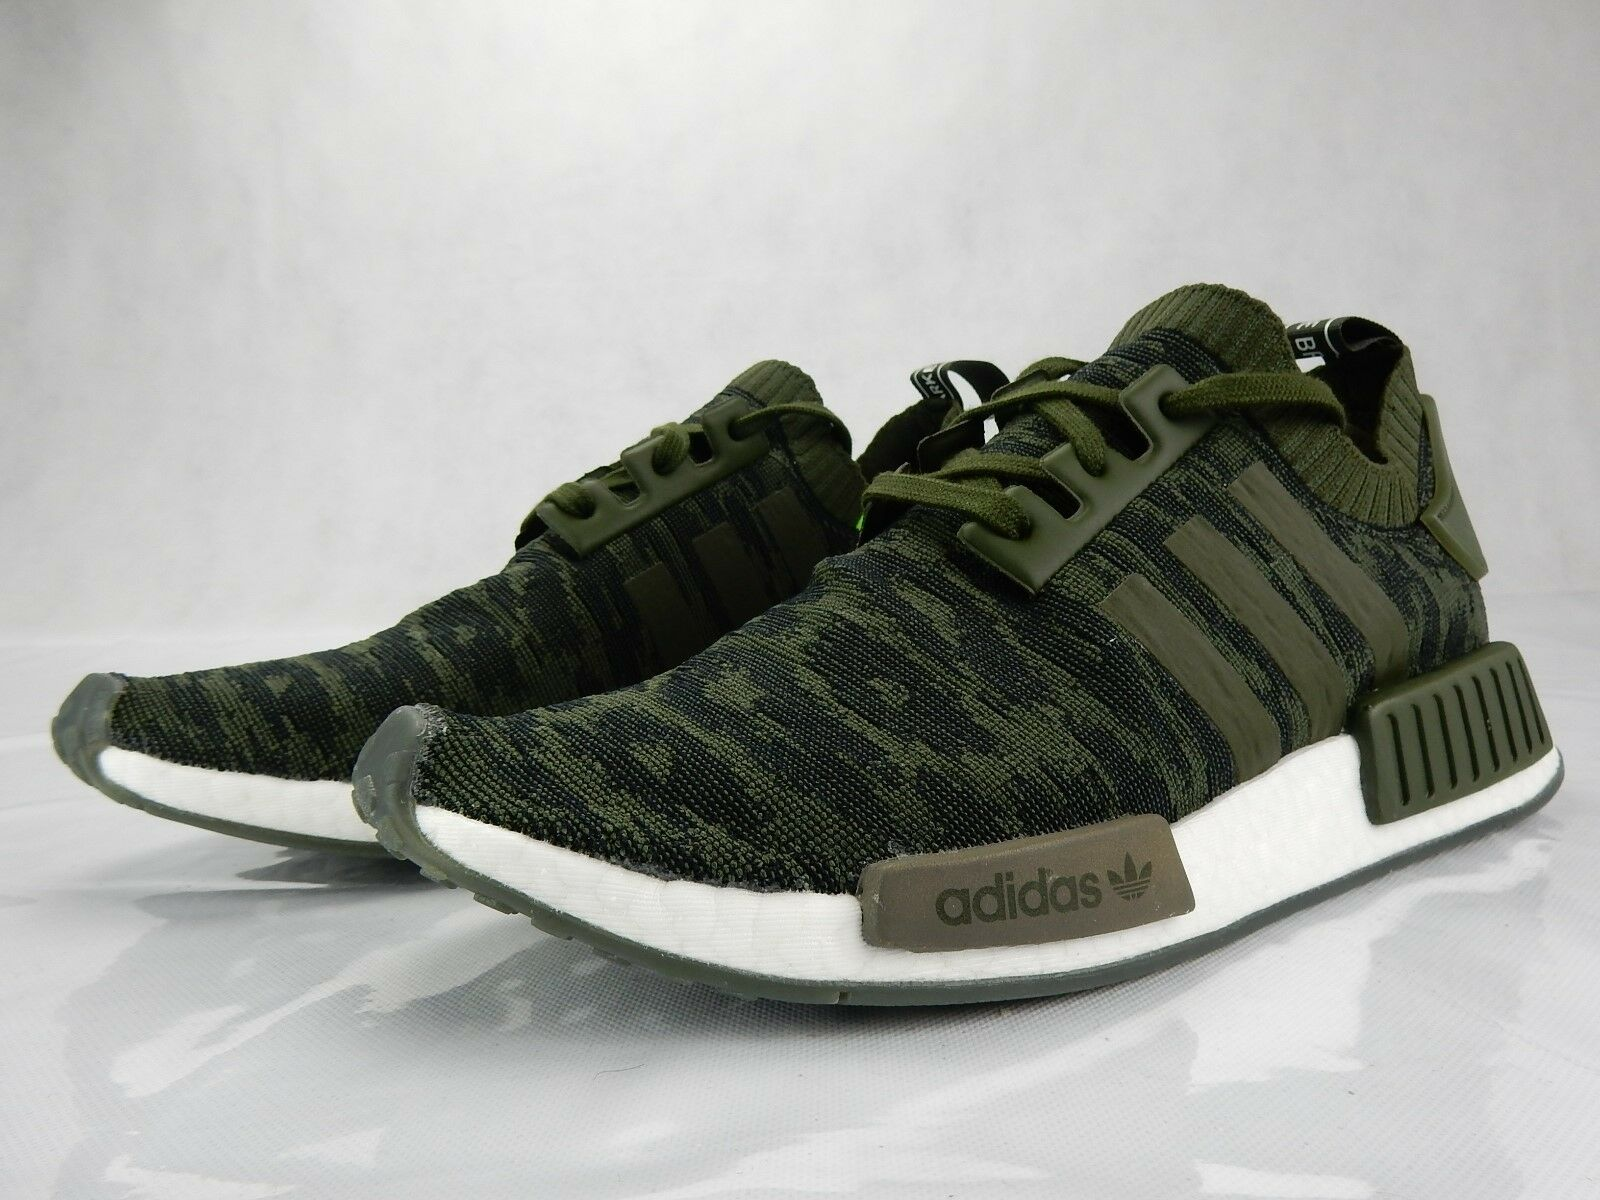 save off faa1e f2c23 Adidas NMD R1 Night Night Night Cargo Glitch Green CQ2445 Mens S Shoes Size  10 New Sneakers